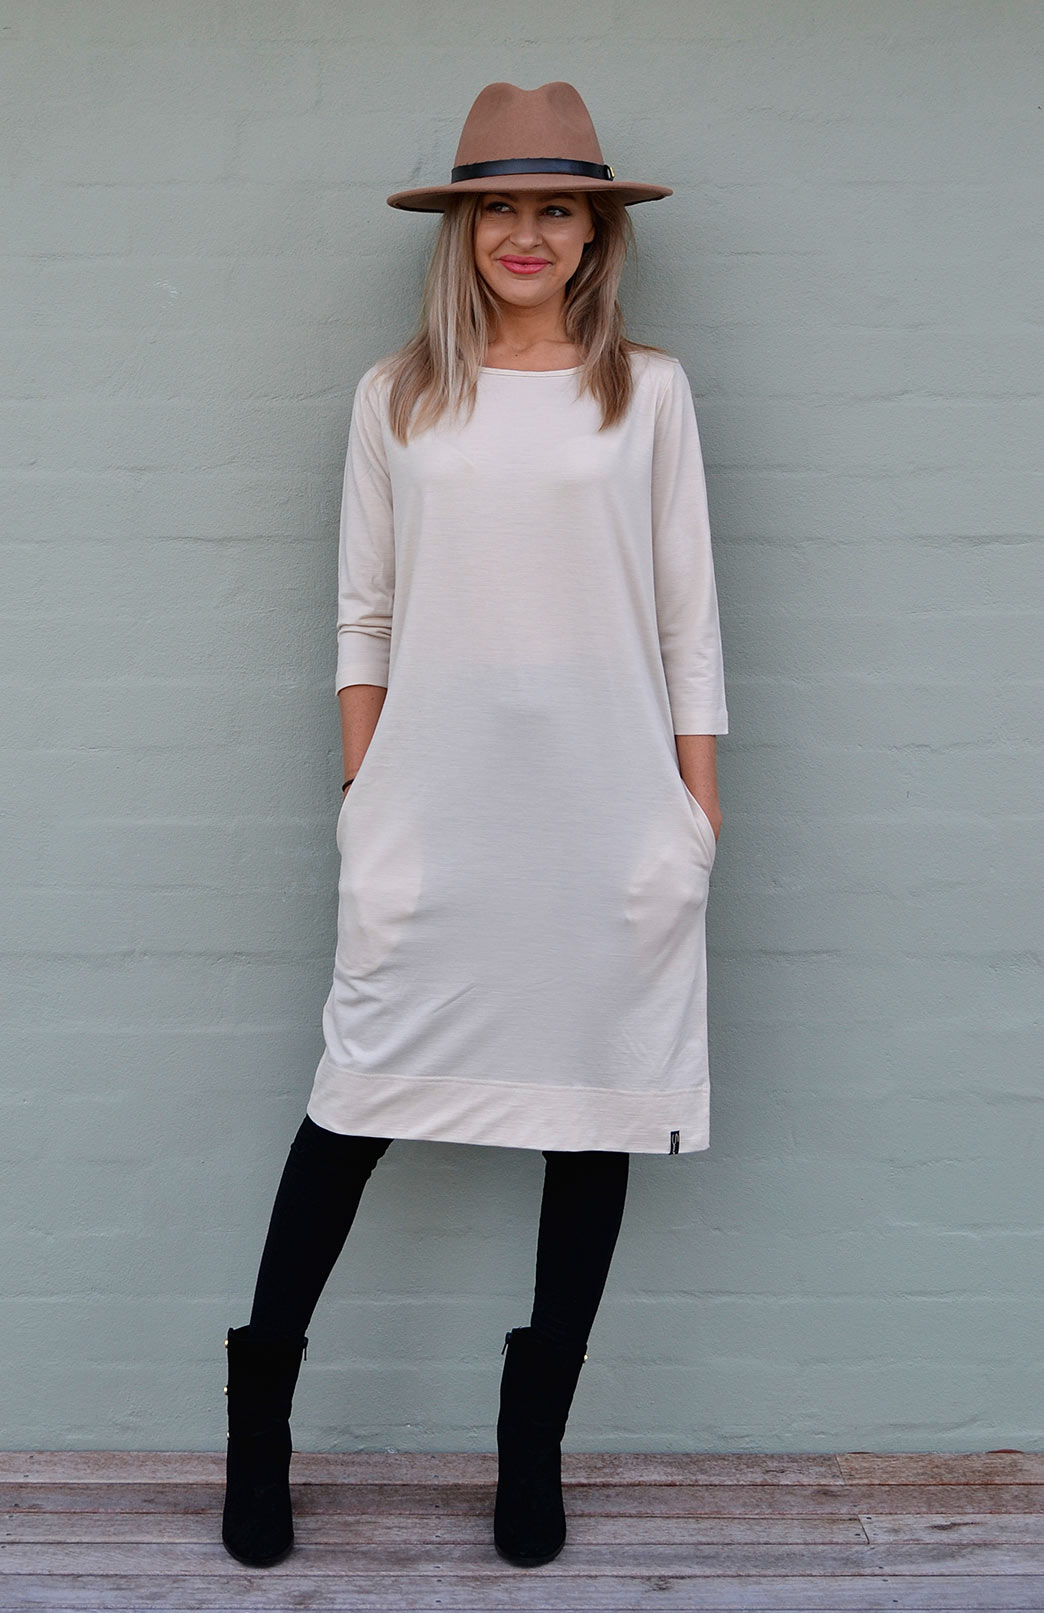 Audrey Shift Dress - Women's Cream Merino Wool Classic Knee Length Dress - Smitten Merino Tasmania Australia